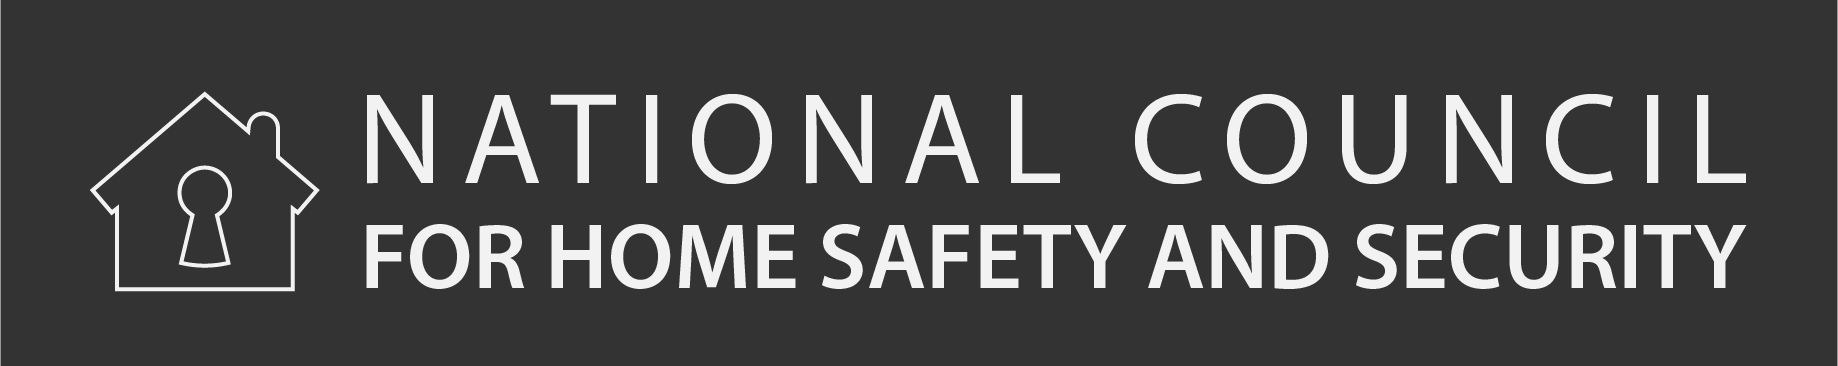 National Council For Home Safety And Security 1015 15th St NW 600 Washington DC 20005